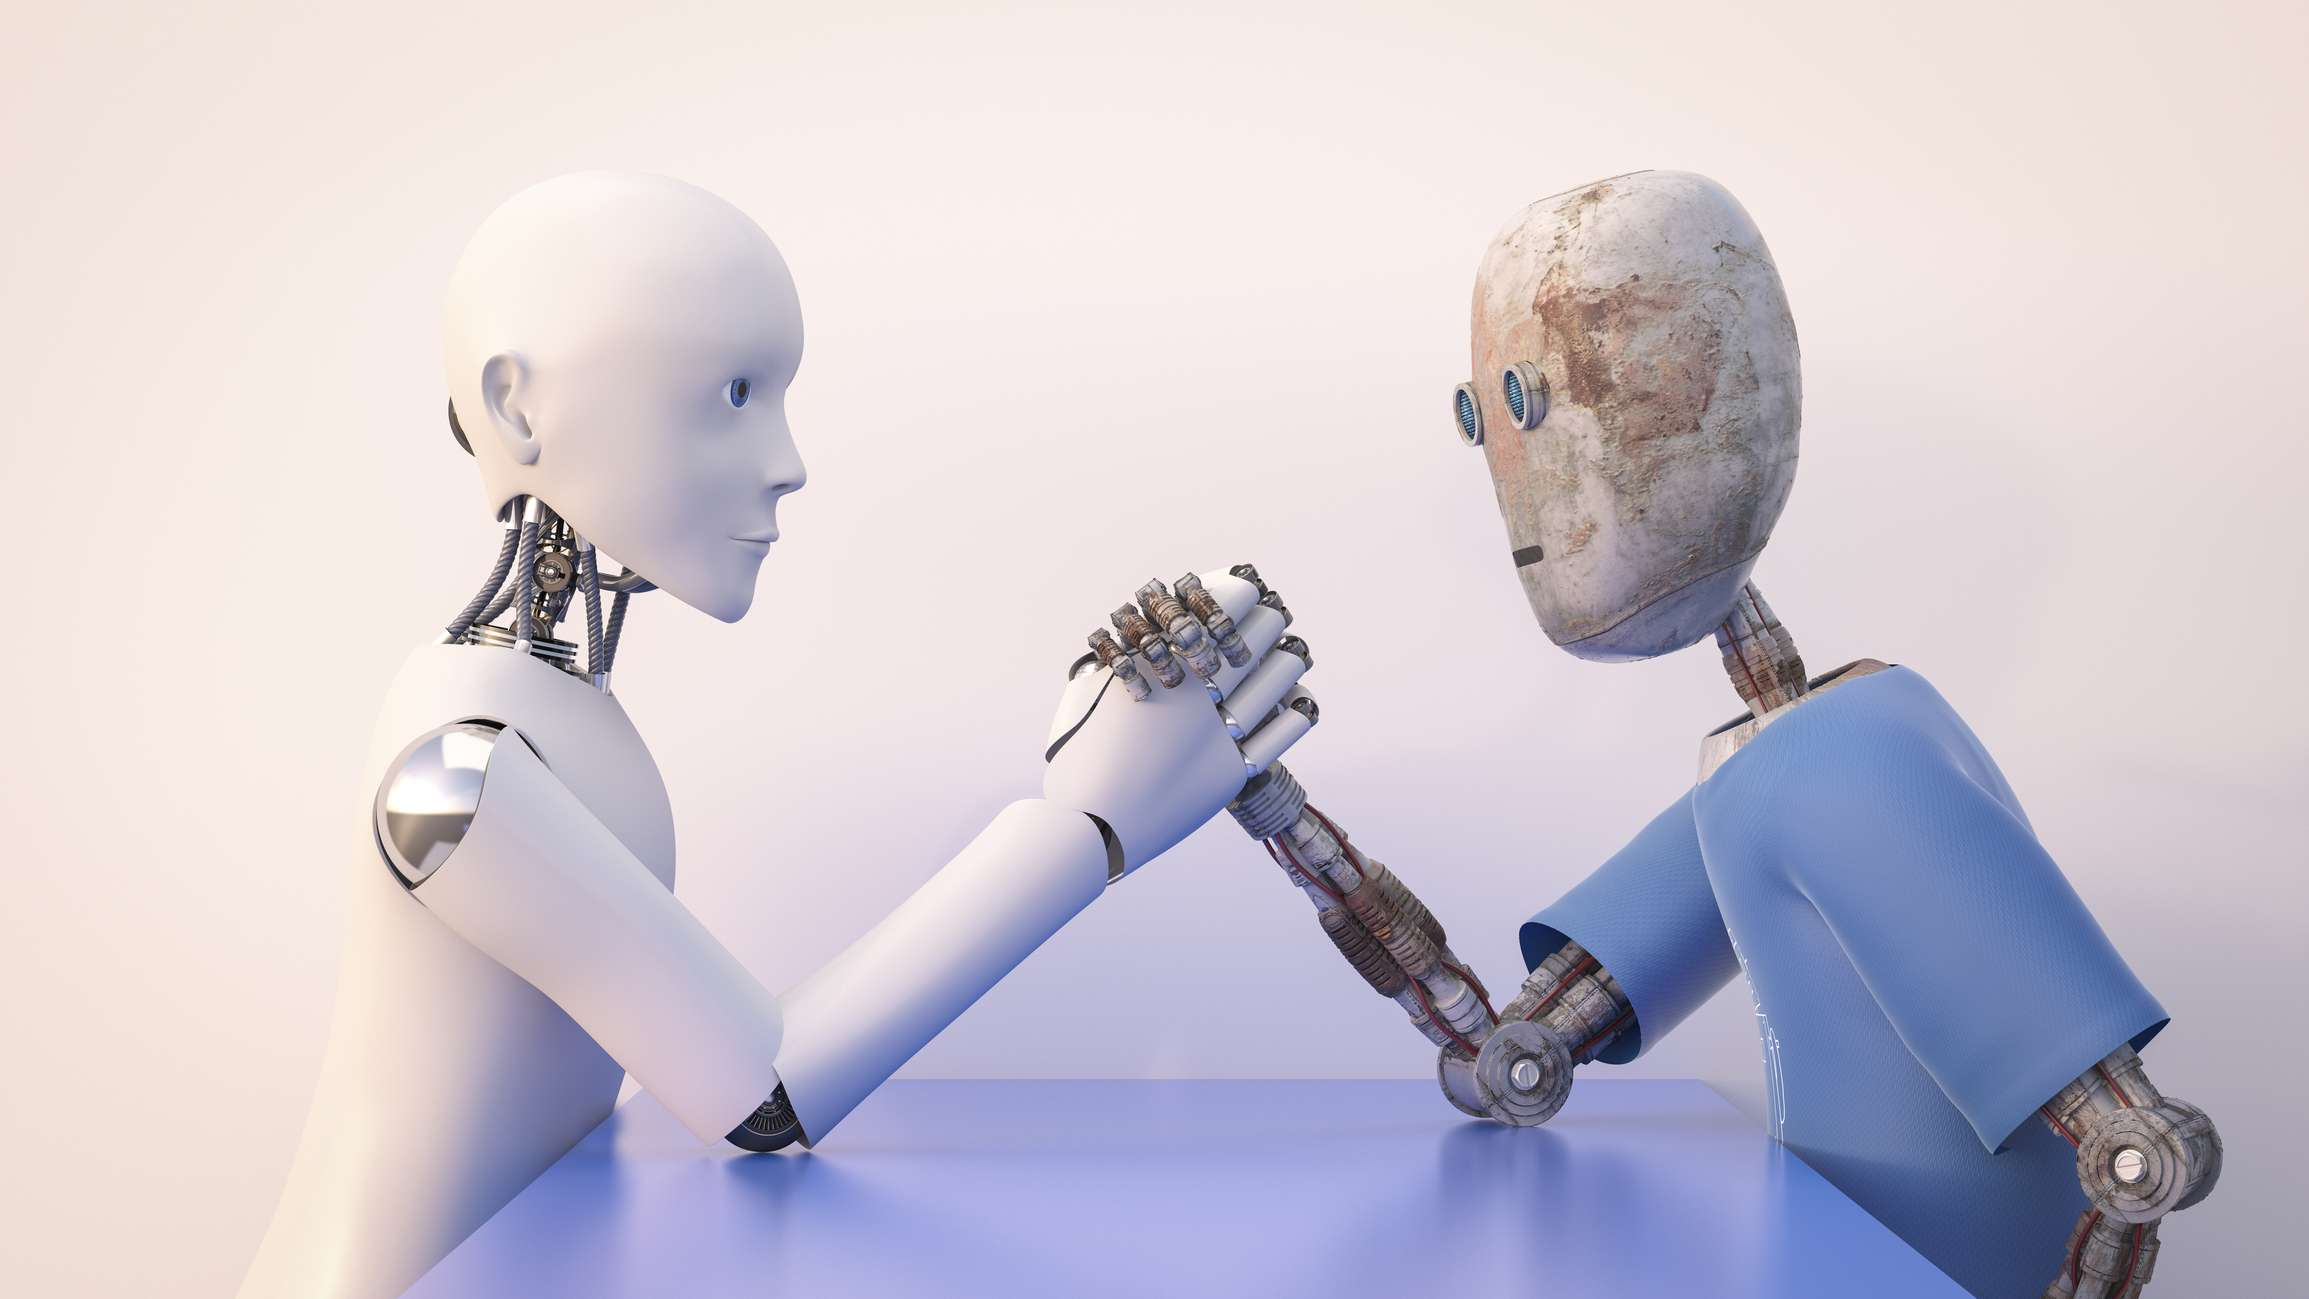 Two robots arm wrestling.